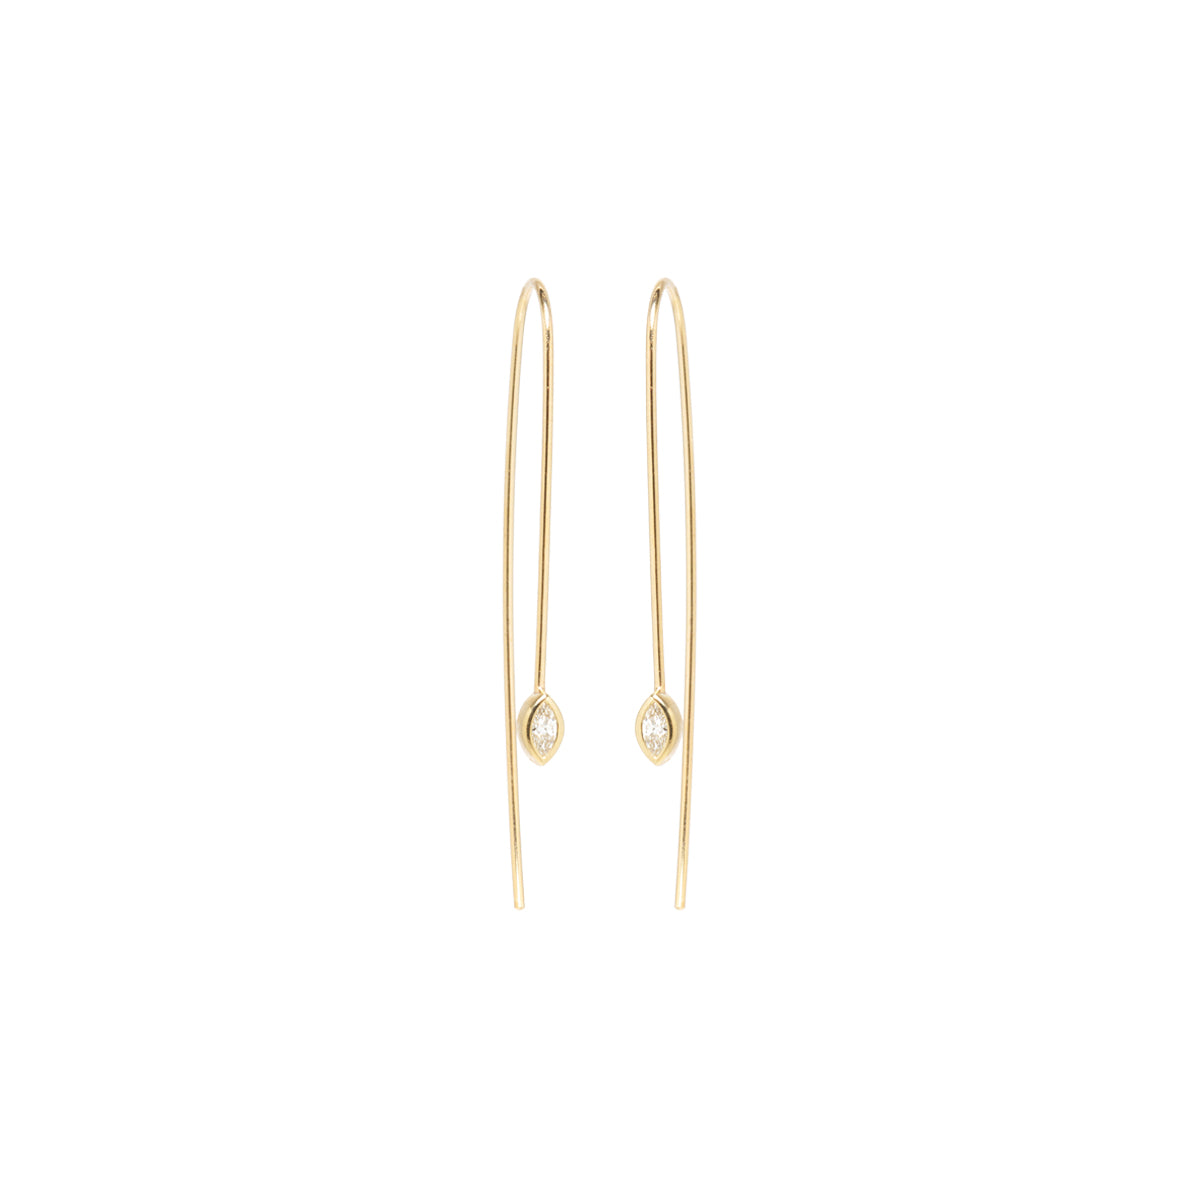 14k marquis diamond wire earrings